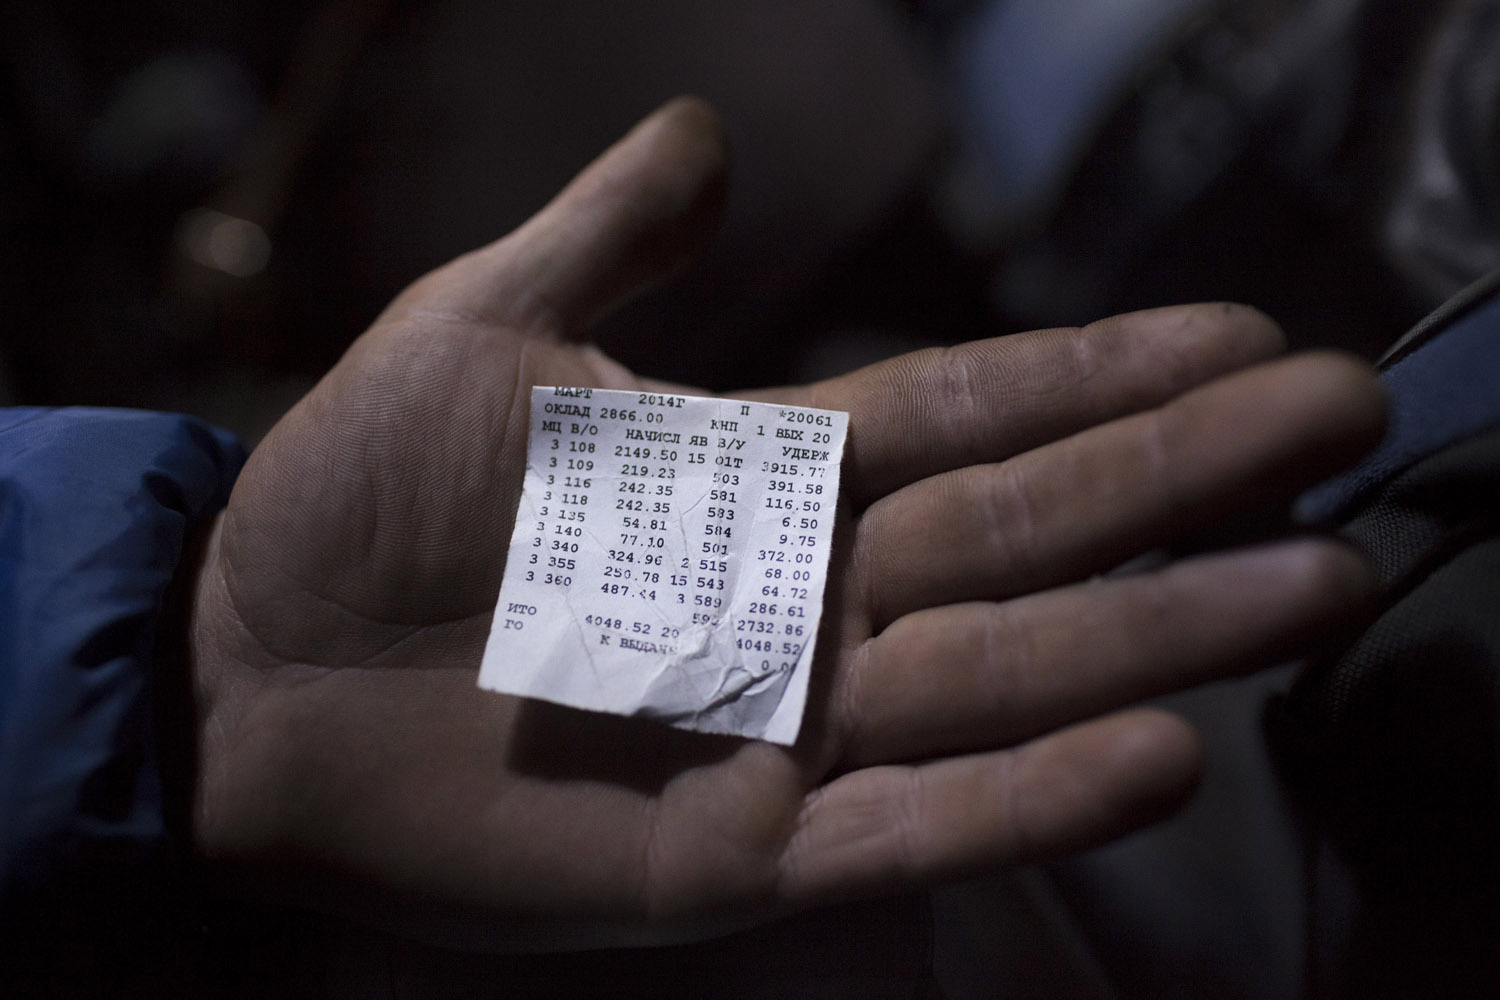 A miner in Krasnodon showing his last monthly paycheck, amounting to little more than 4,000 grivnas, or about 250 euros. The cost of feeding a family can reach 5,000 grivnas, and life keeps getting more expensive, especially since the events at Maidan have thrown the country into turmoil.